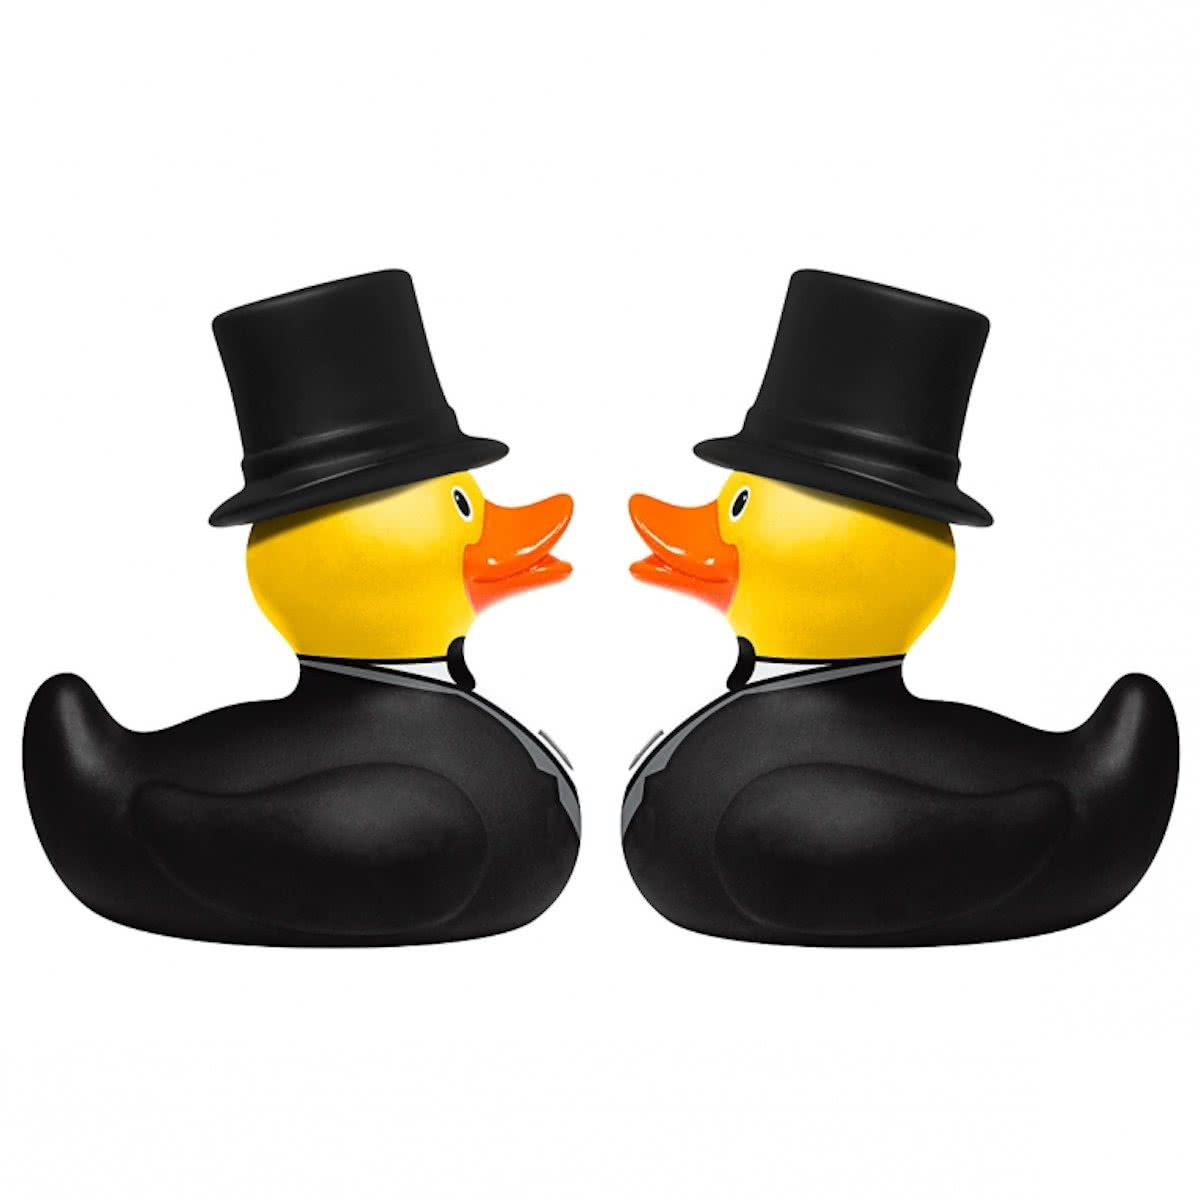 DELUXE MINI GROOM & GROOM DUCK SET